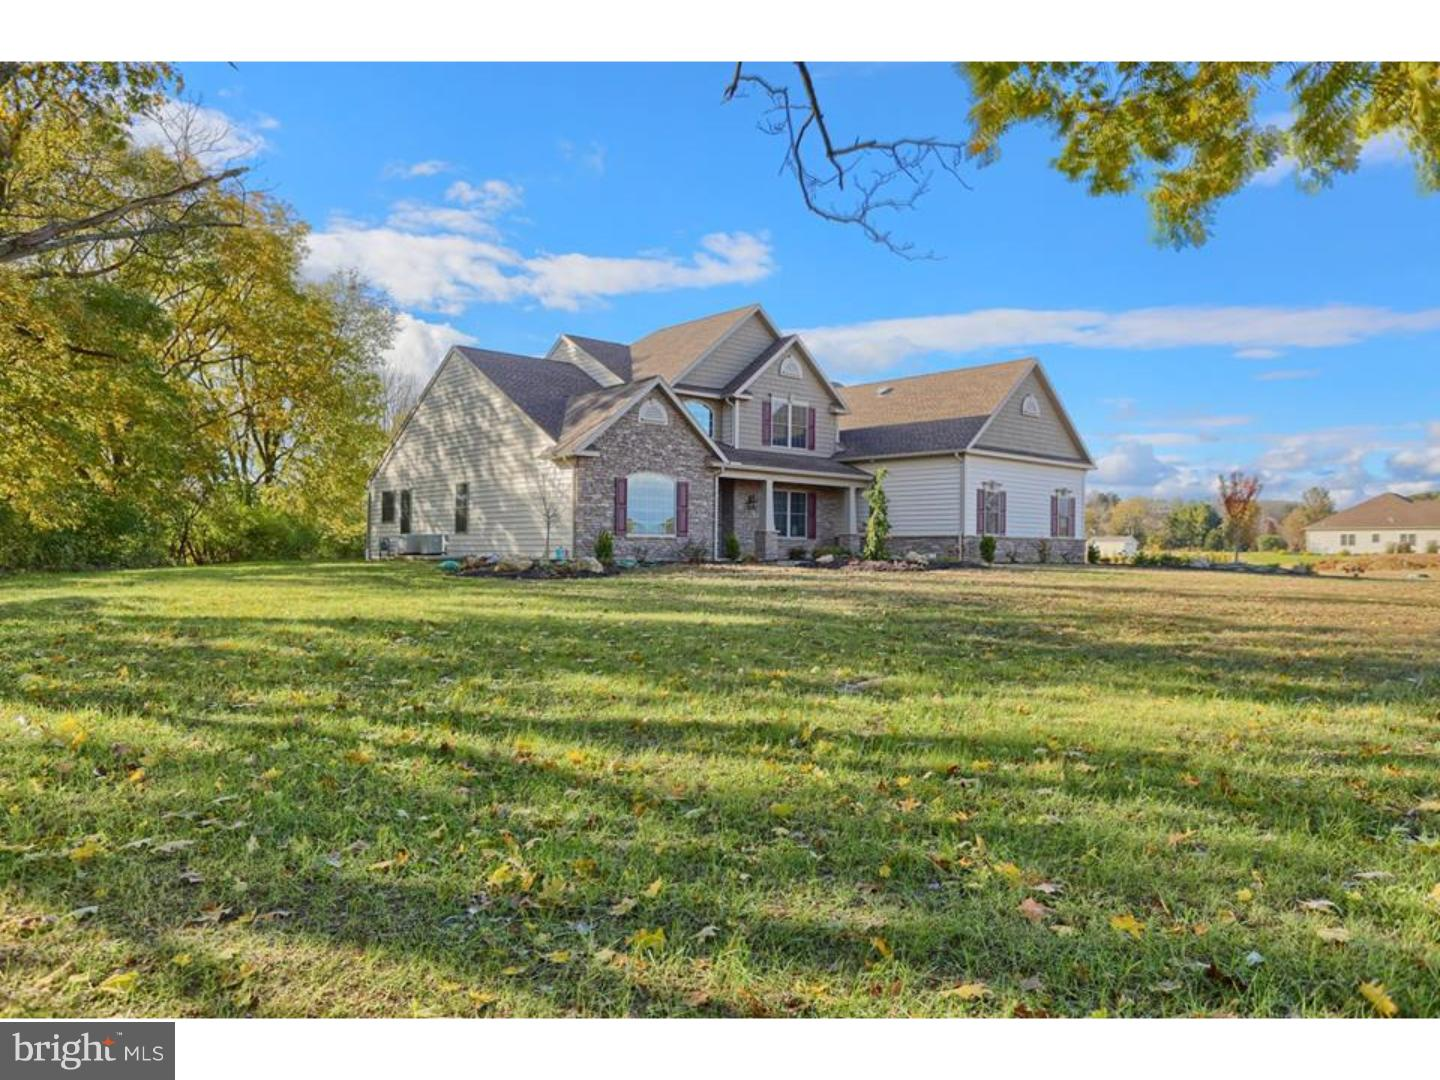 154 GAUL ROAD LOT 55, SINKING SPRING, PA 19608